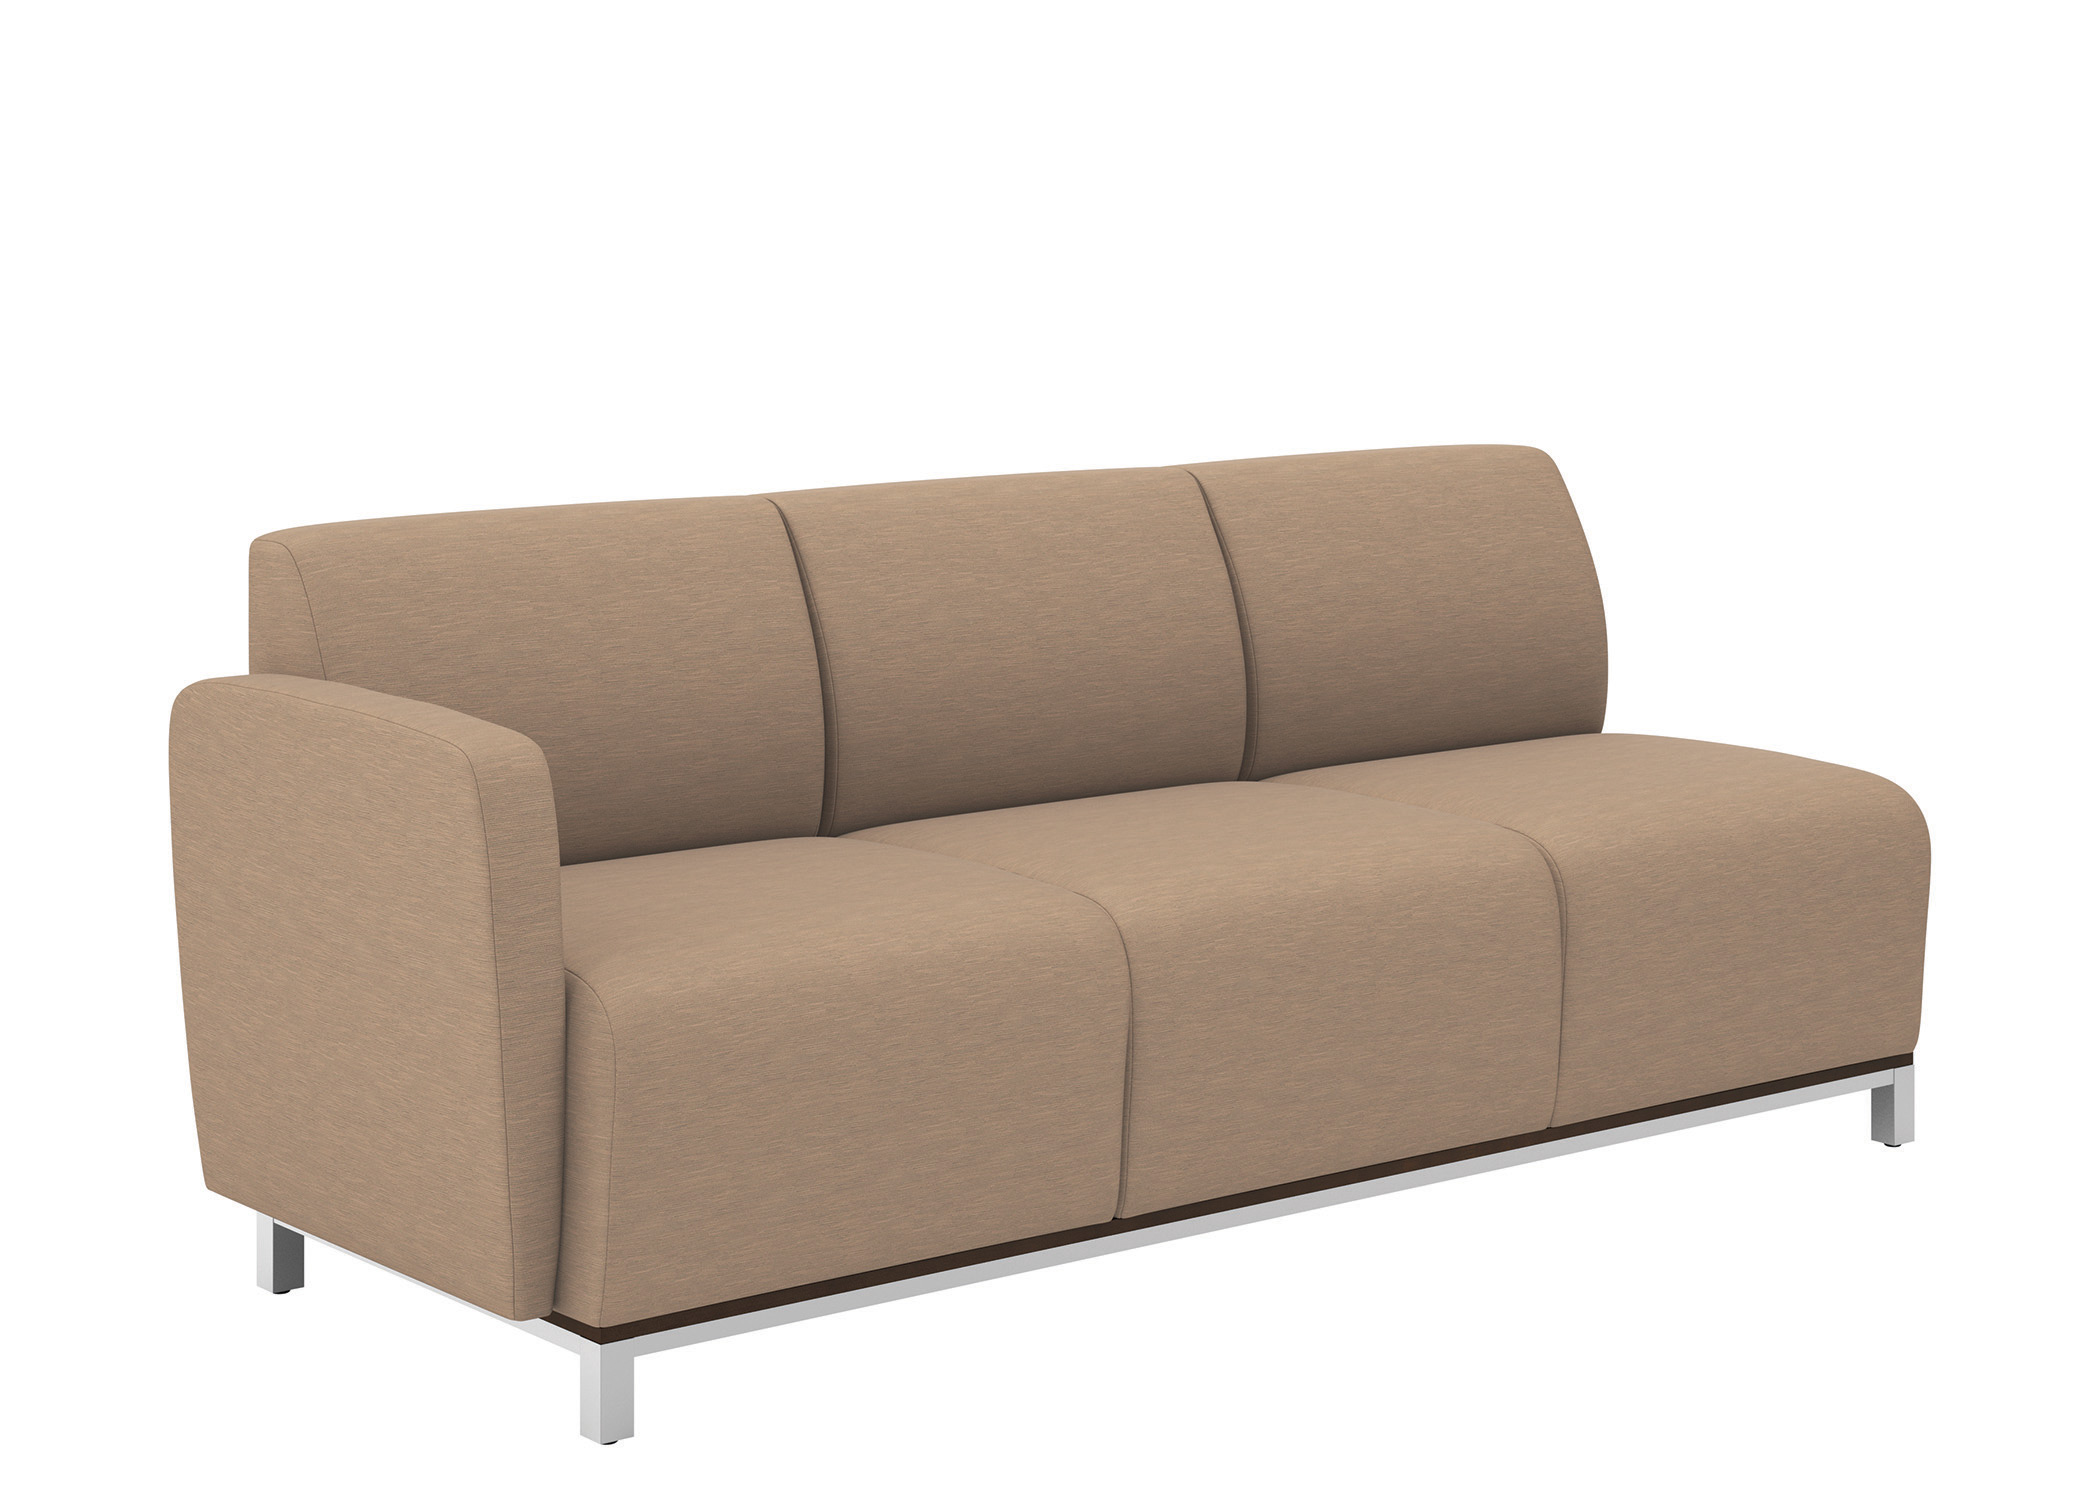 long chair couch sofa best storytime seating national office furniture three seat lounge single arm